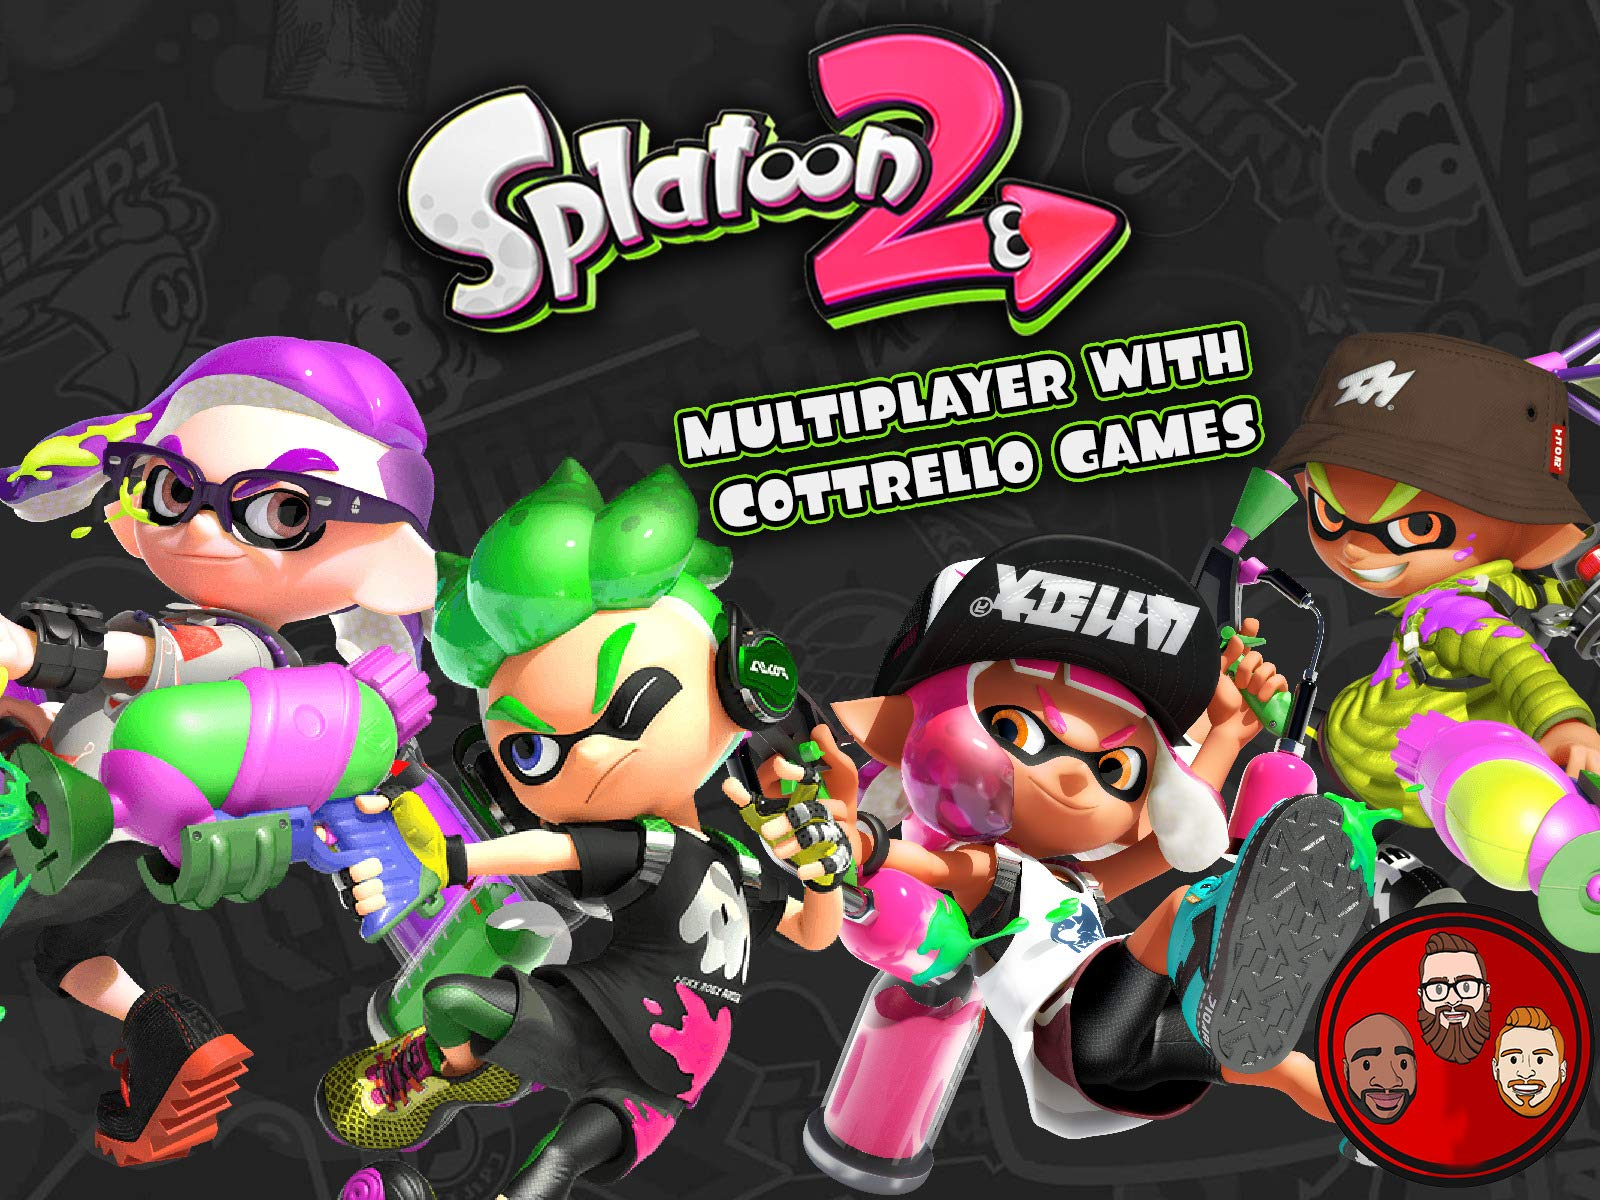 Splatoon 2 Multiplayer with Cottrello Games